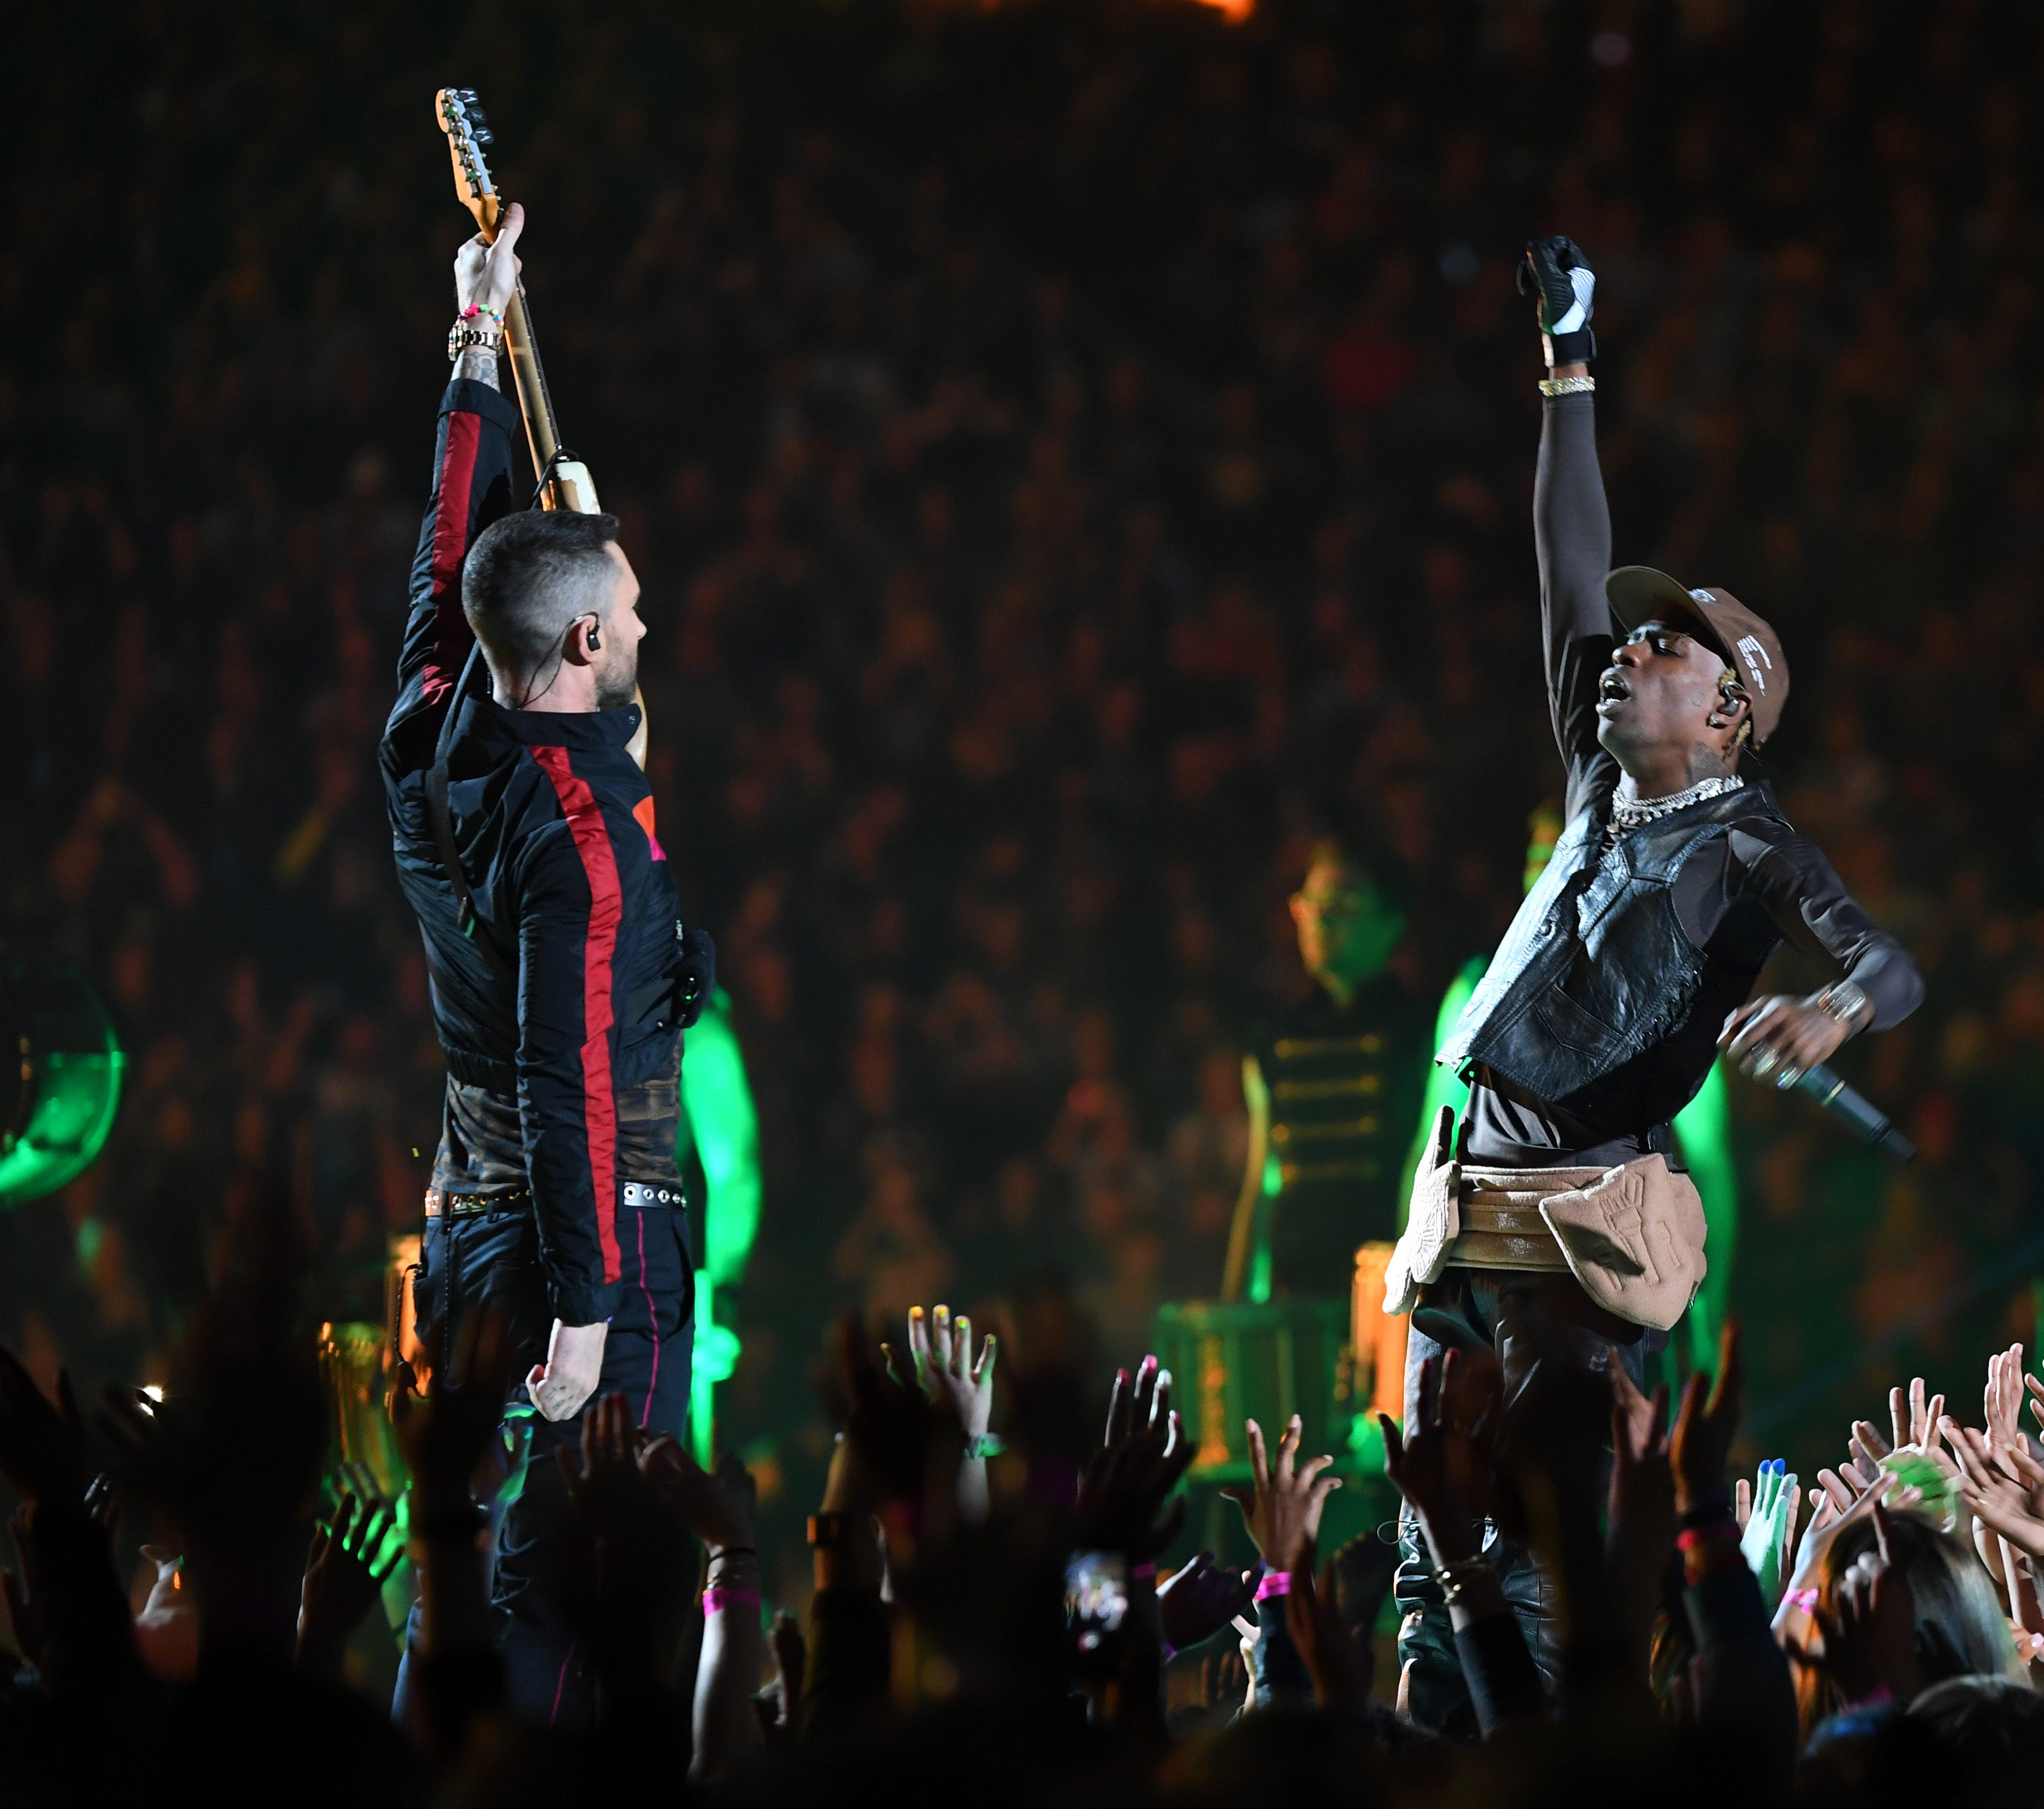 Image result for travis scott maroon 5 superbowl performance shirtless